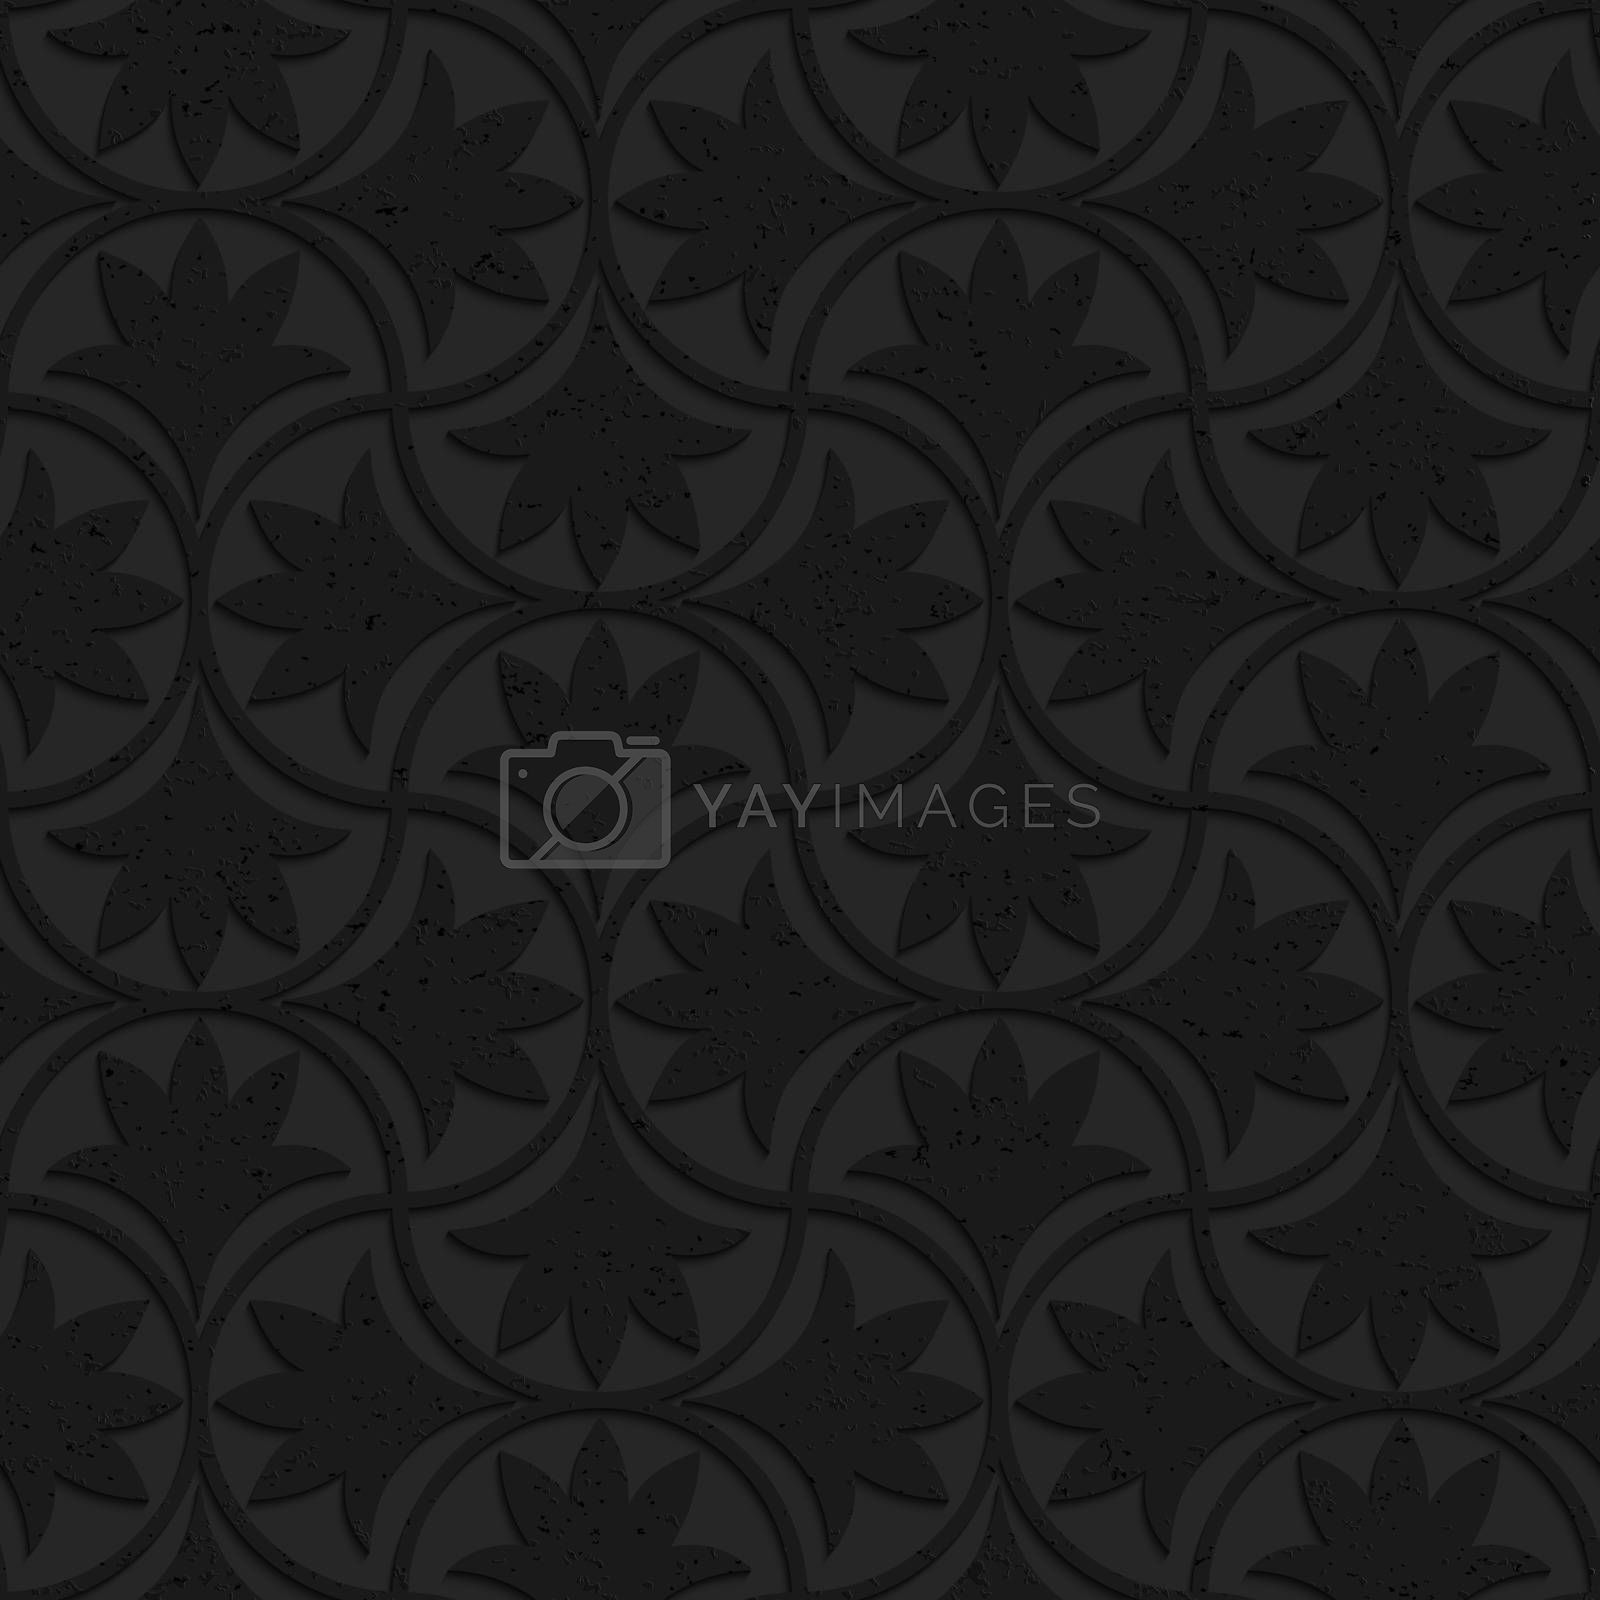 Seamless geometric background. Pattern with 3D texture and realistic shadow.Textured black plastic floral pin will.